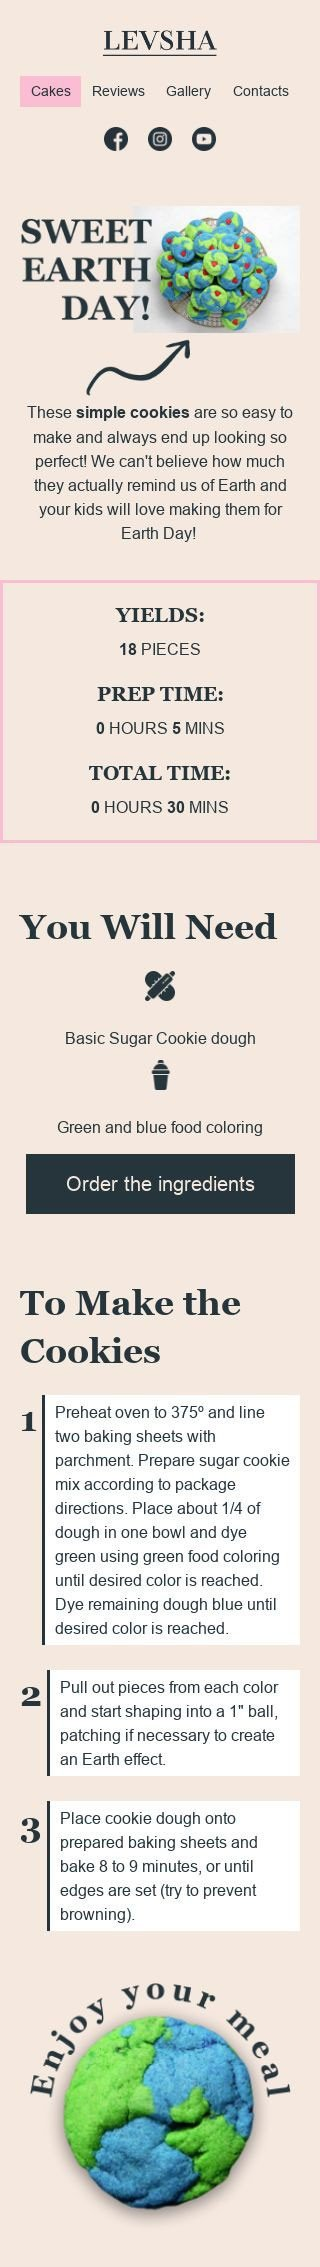 Earth Day Email Template «Make cookies» for Food industry mobile view